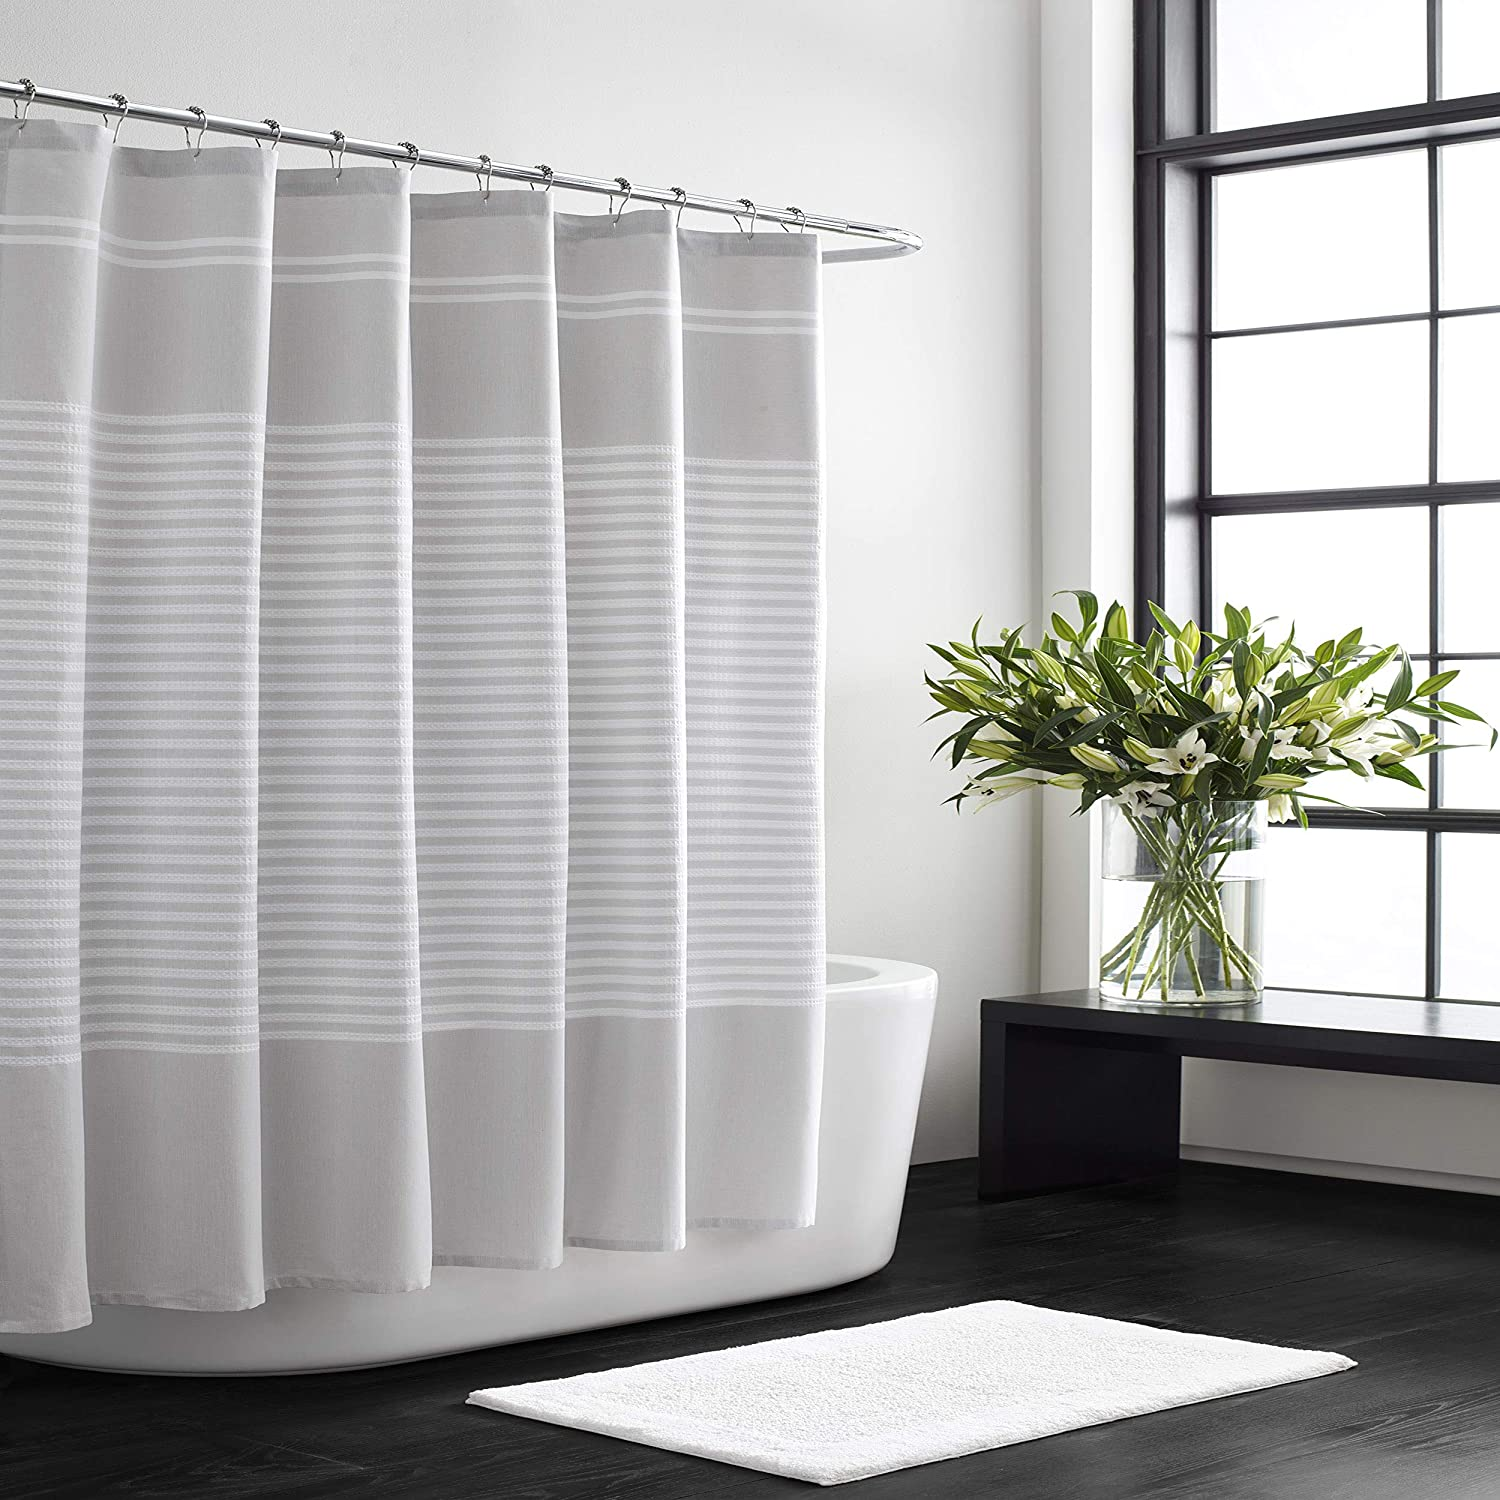 Vera Wang Stripe Collection 100 Cotton Lightweight Durable Shower Curtain Simple And Elegant Style For Bathroom Décor 70 X 72 Seersucker Home Kitchen